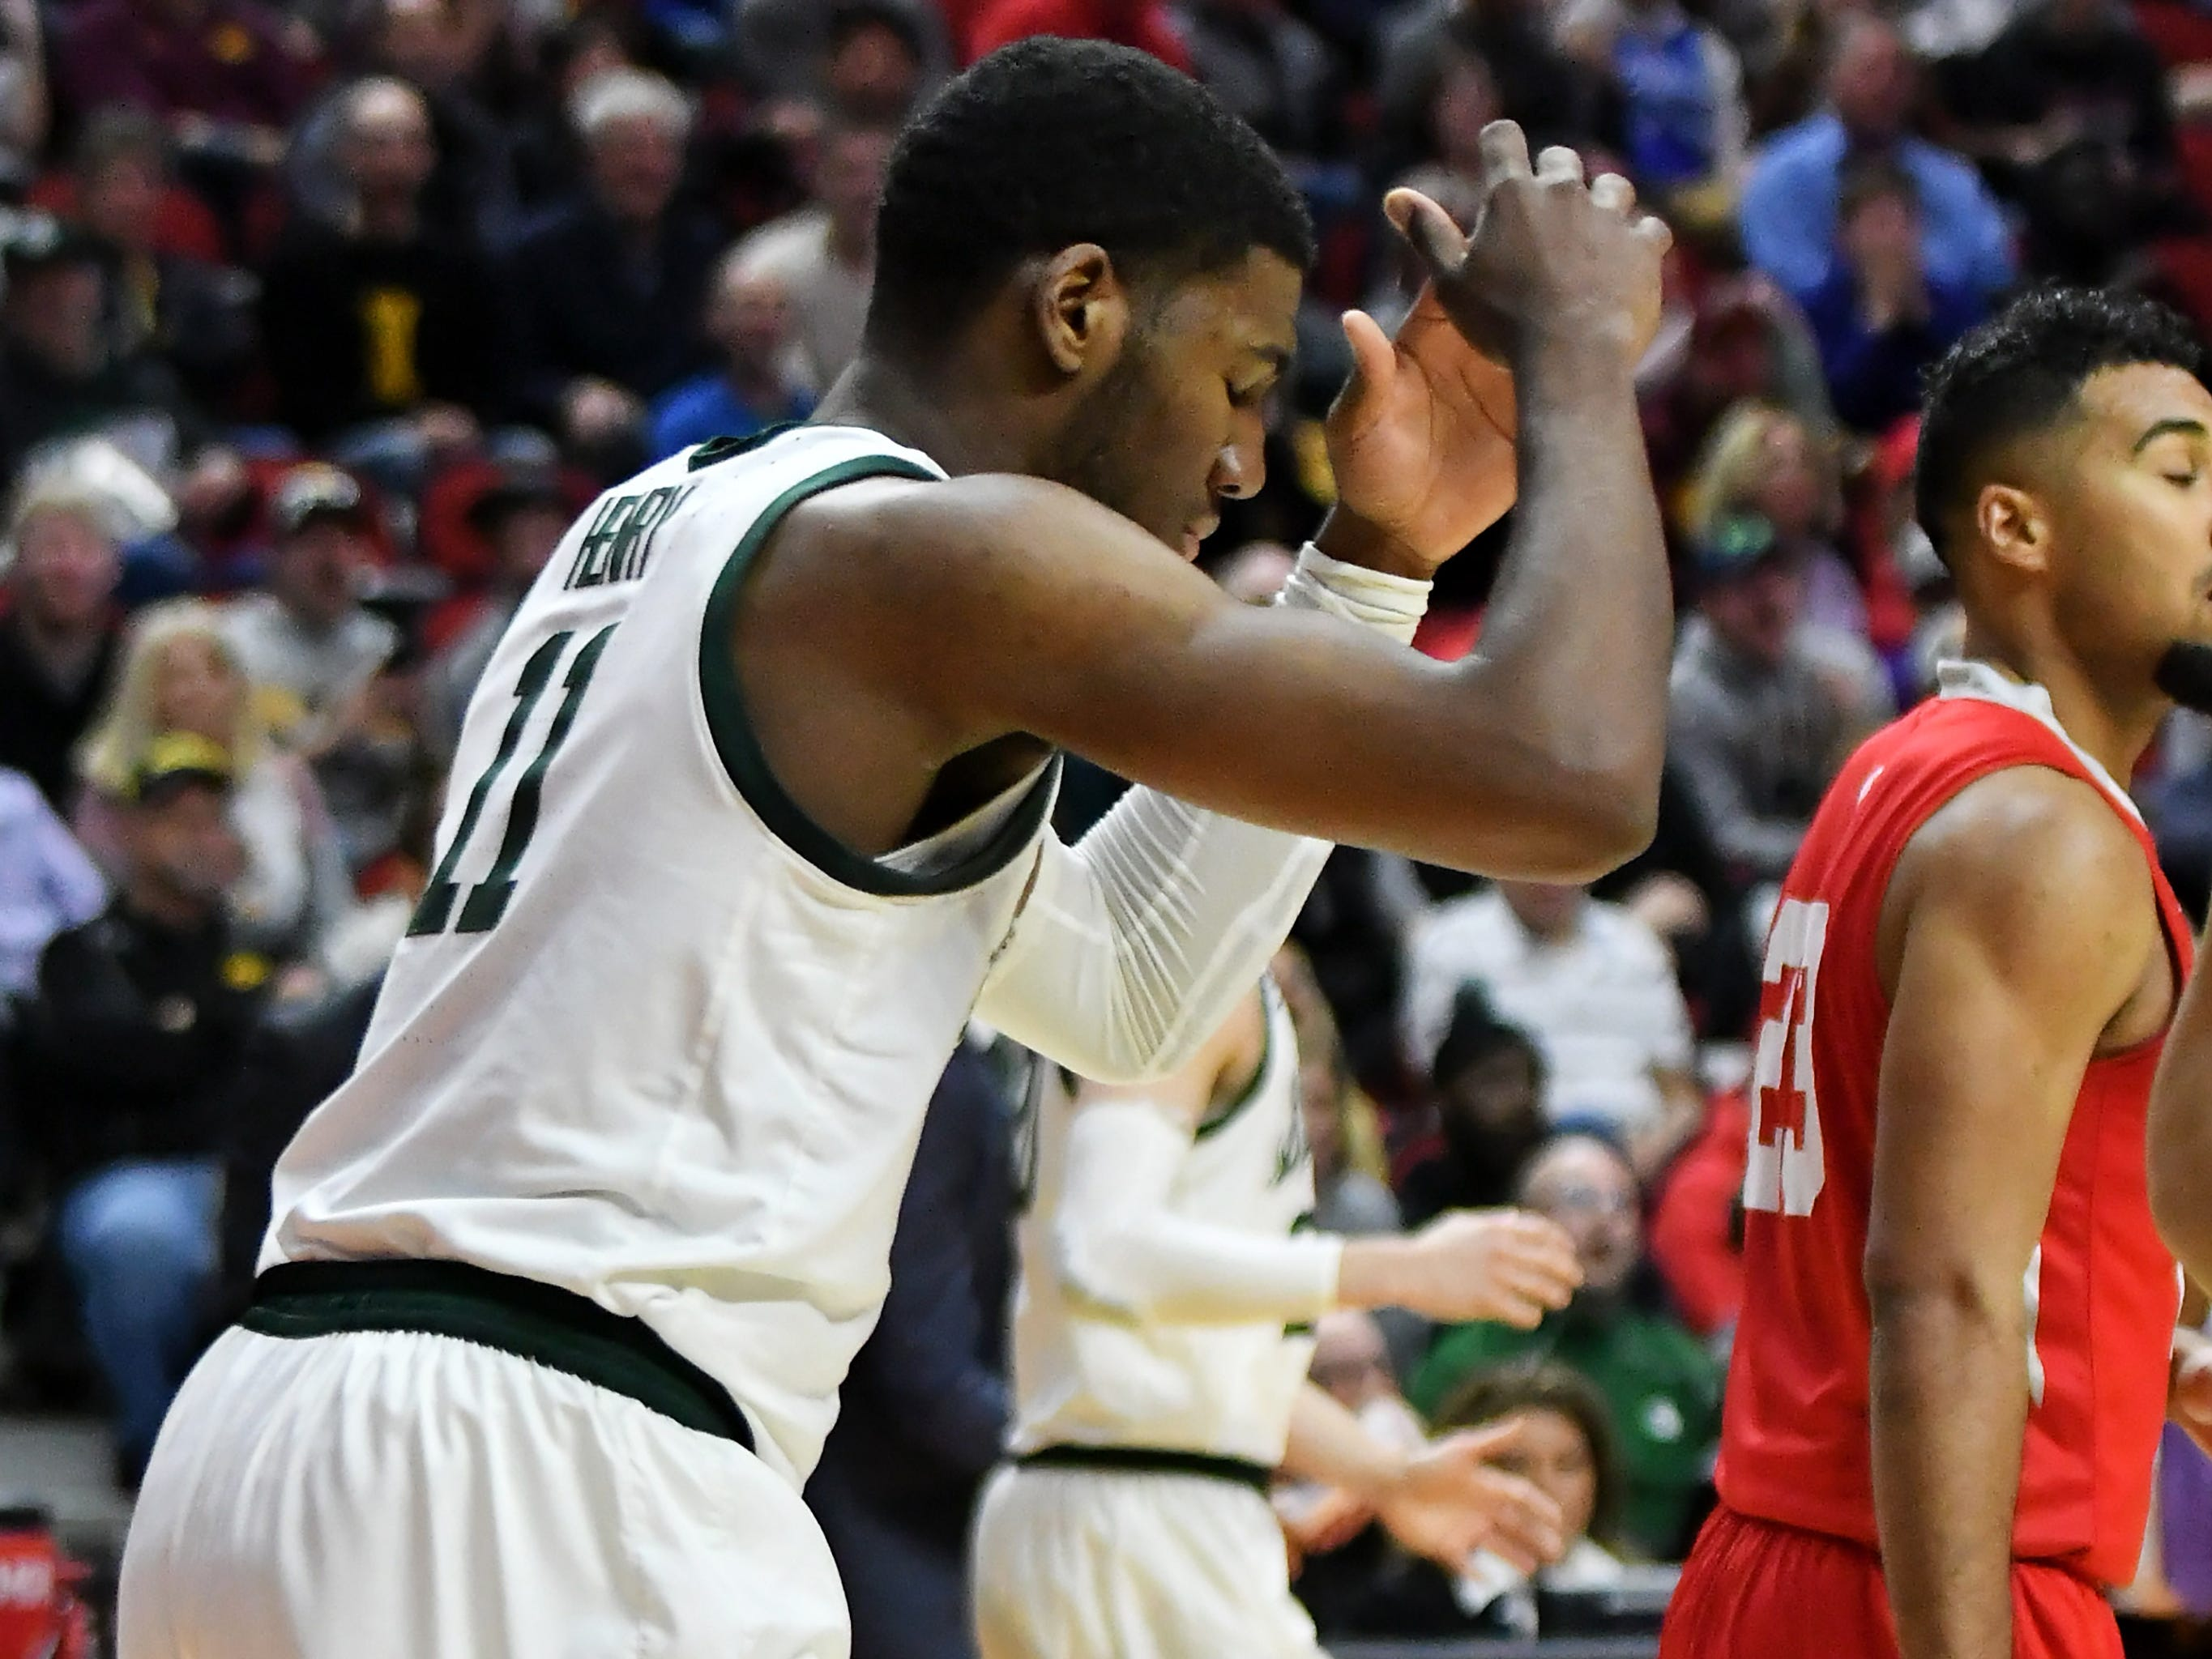 Michigan State forward Aaron Henry (11) reacts after an attempted dunk in the second half.